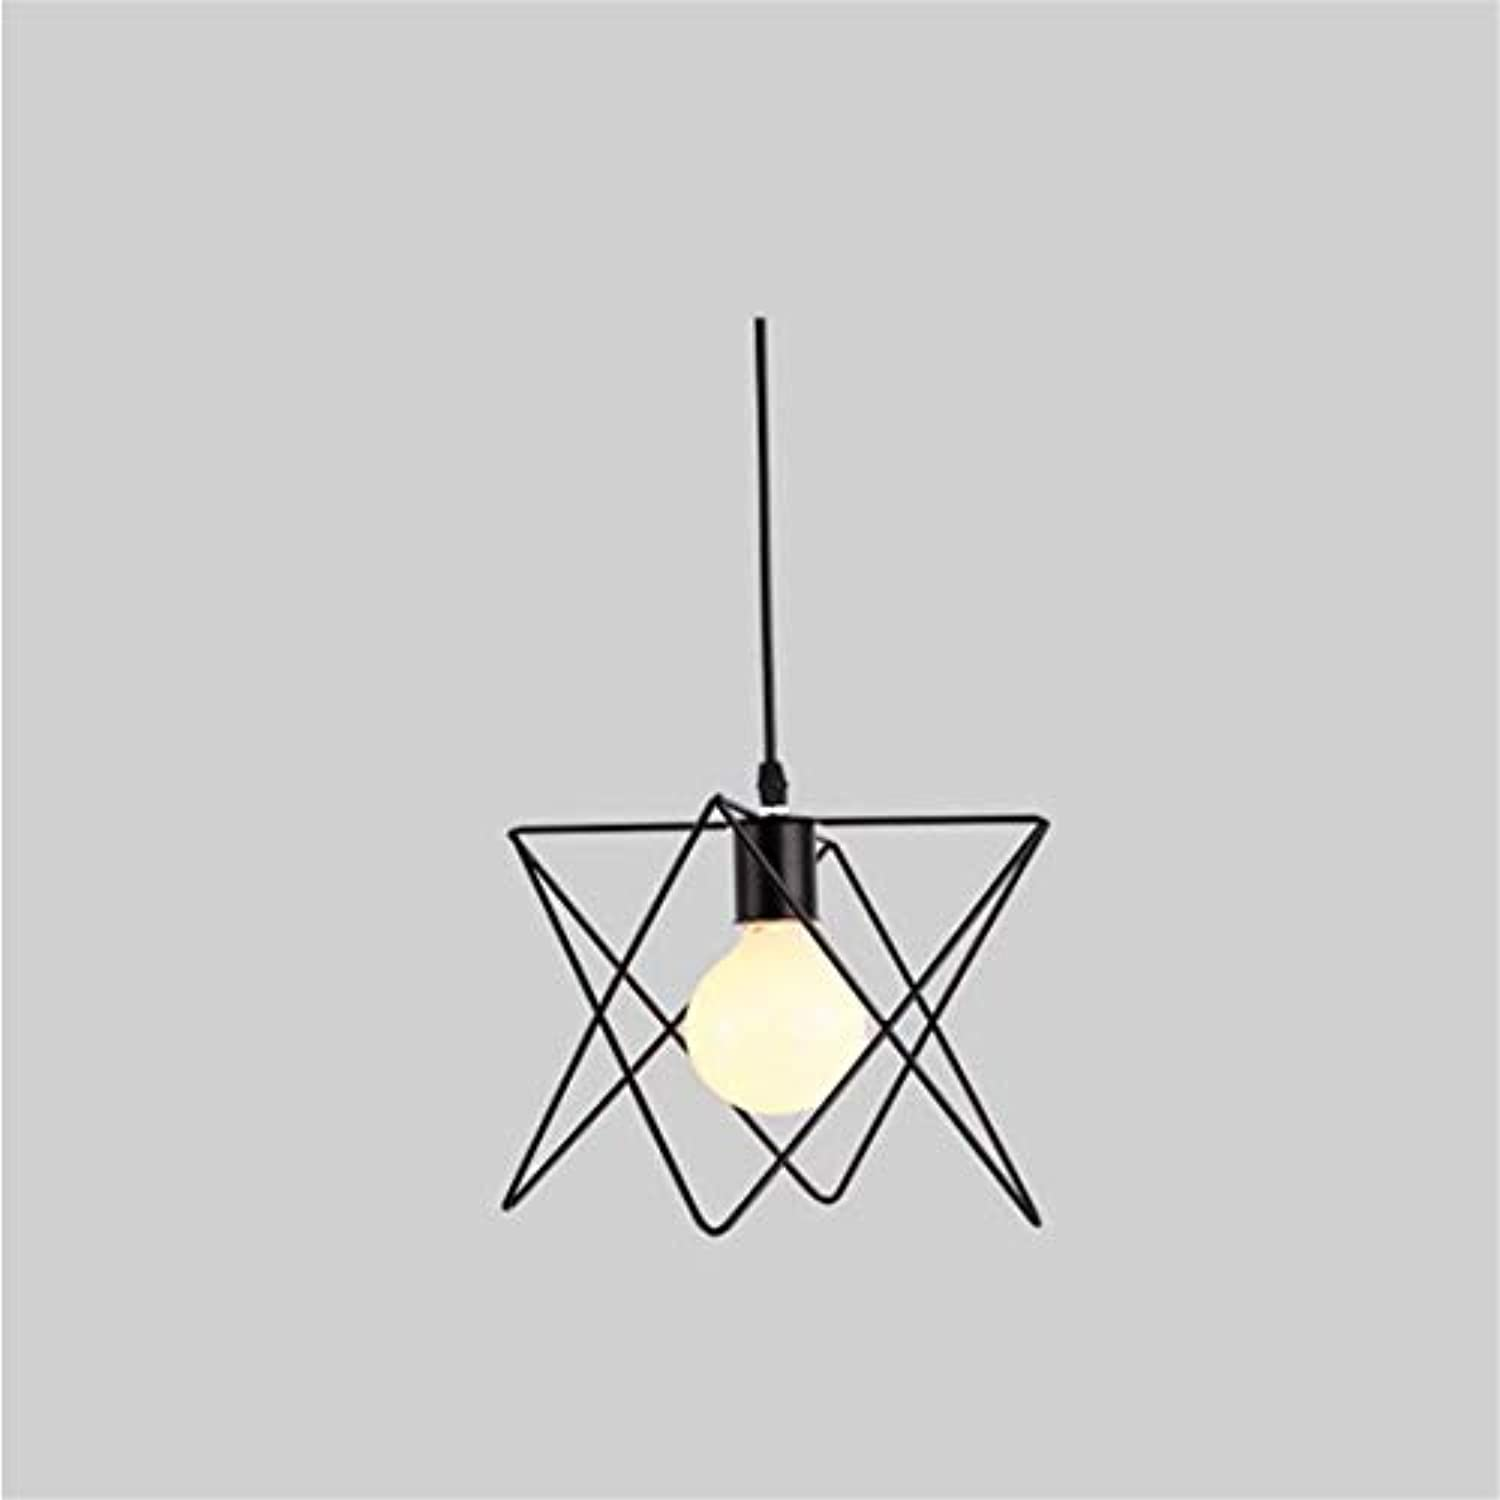 Led Wandleuchte Kronleuchterled Wall Light Chandelier Modern, Simple And Creative Personality Chandelier Retro Café Irons Bar Bar Restaurant Of The Lighting